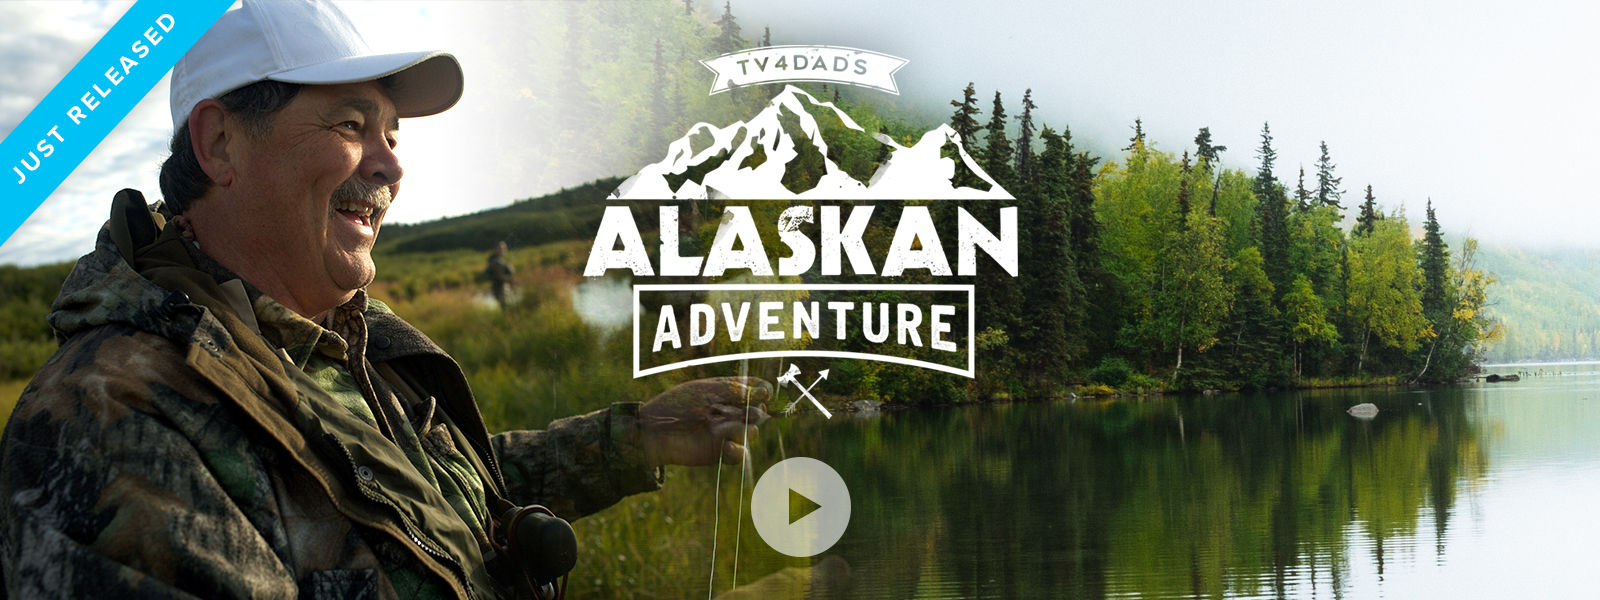 TV4DADS: Alaskan Adventure